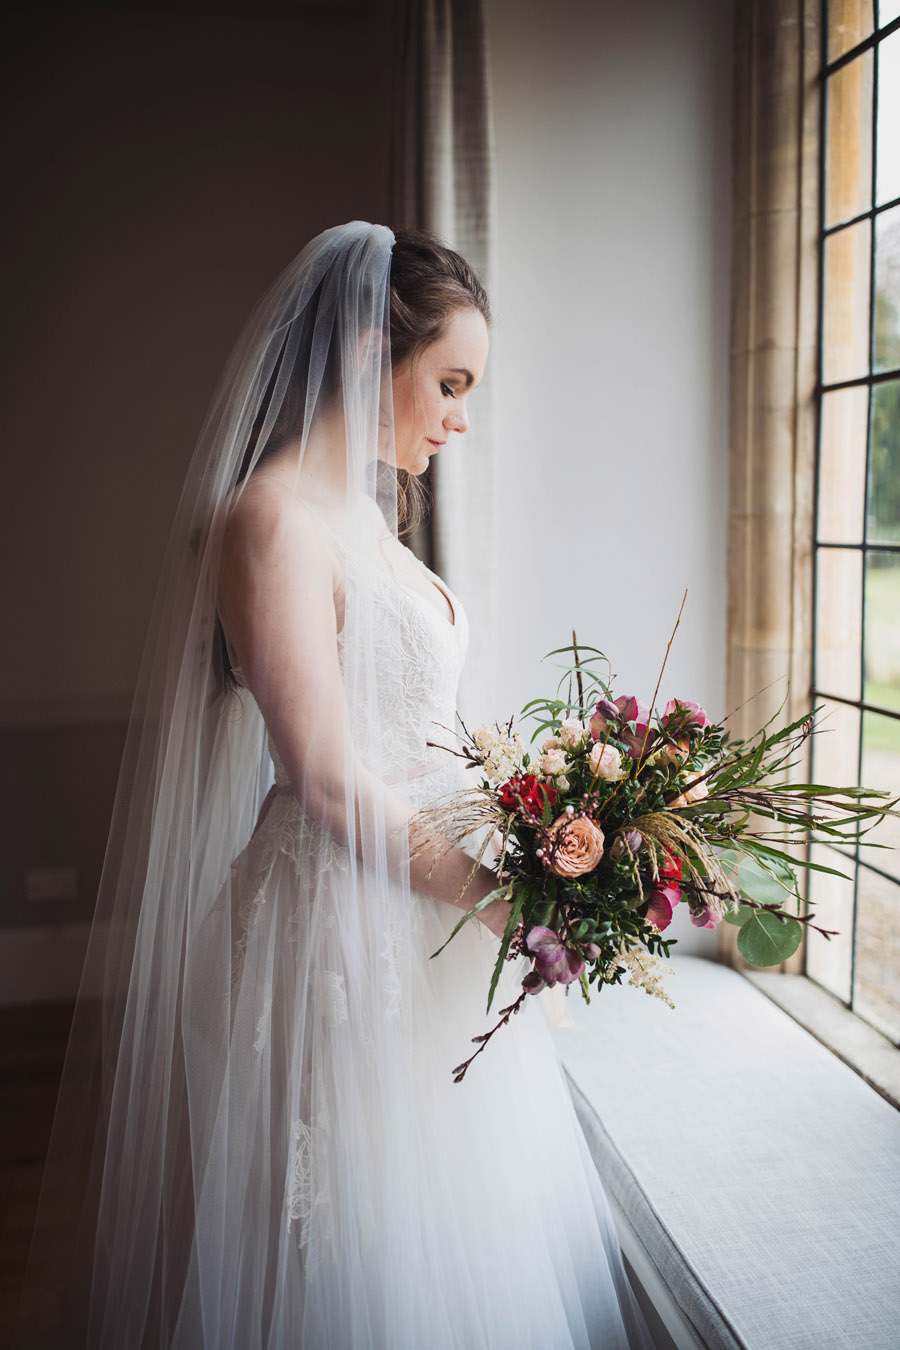 Salisbury Manor wedding photoshoot with amazing local suppliers, image credit Antonia Grace Photography (17)